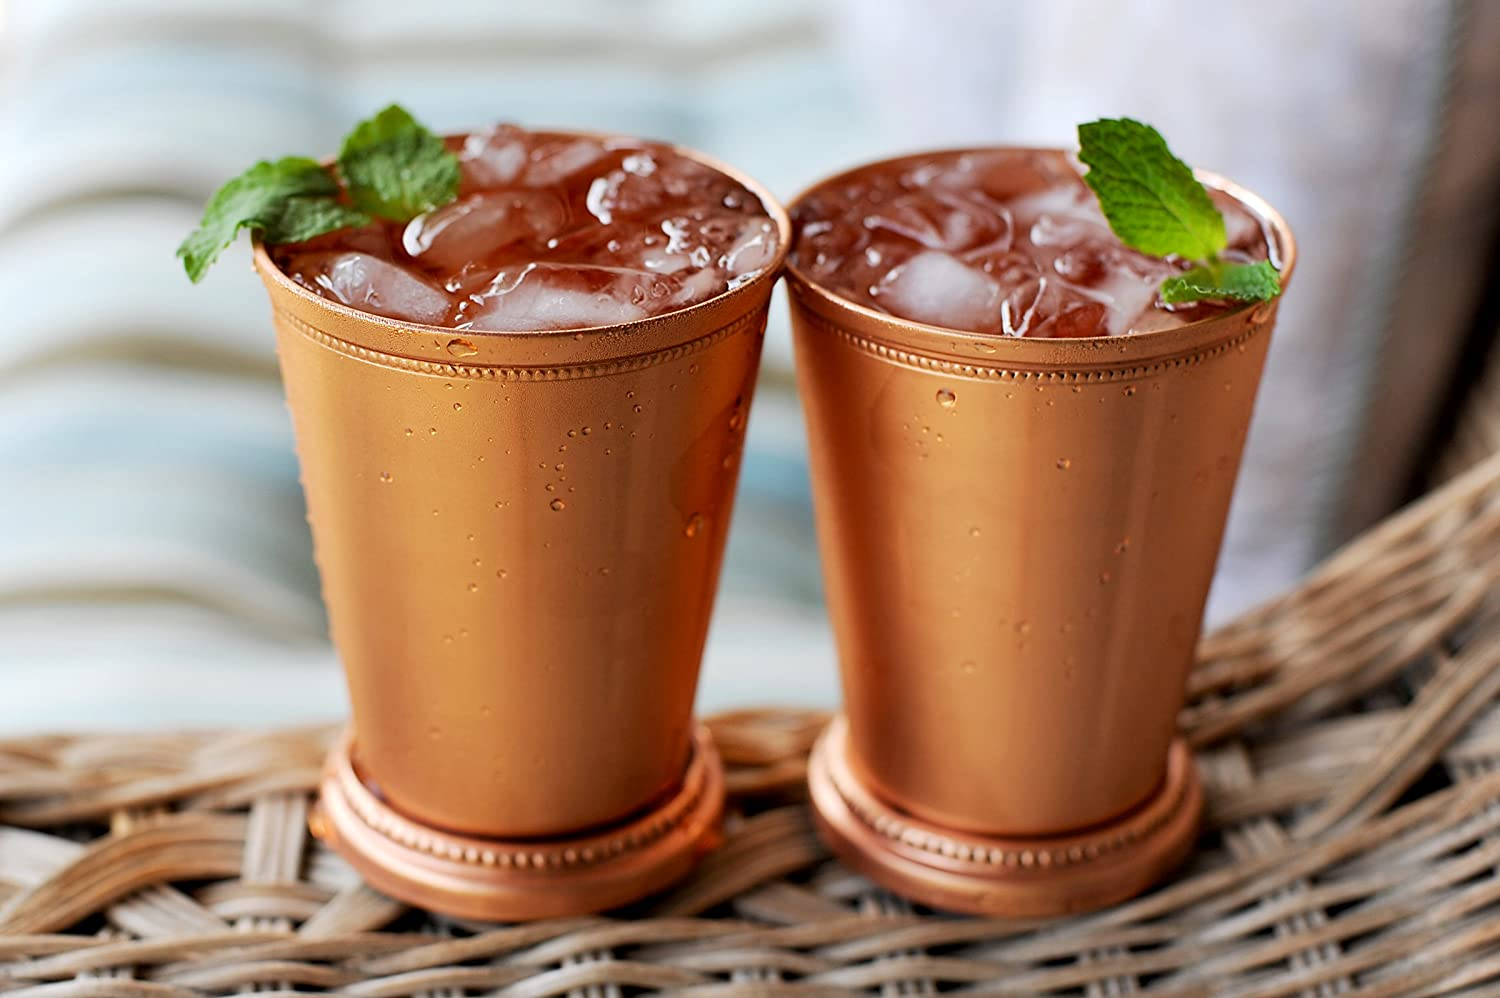 Amazon copper moscow mule mint julep cup 100 pure copper amazon copper moscow mule mint julep cup 100 pure copper beautifully handcrafted 12 oz size mint julep cups reviewsmspy